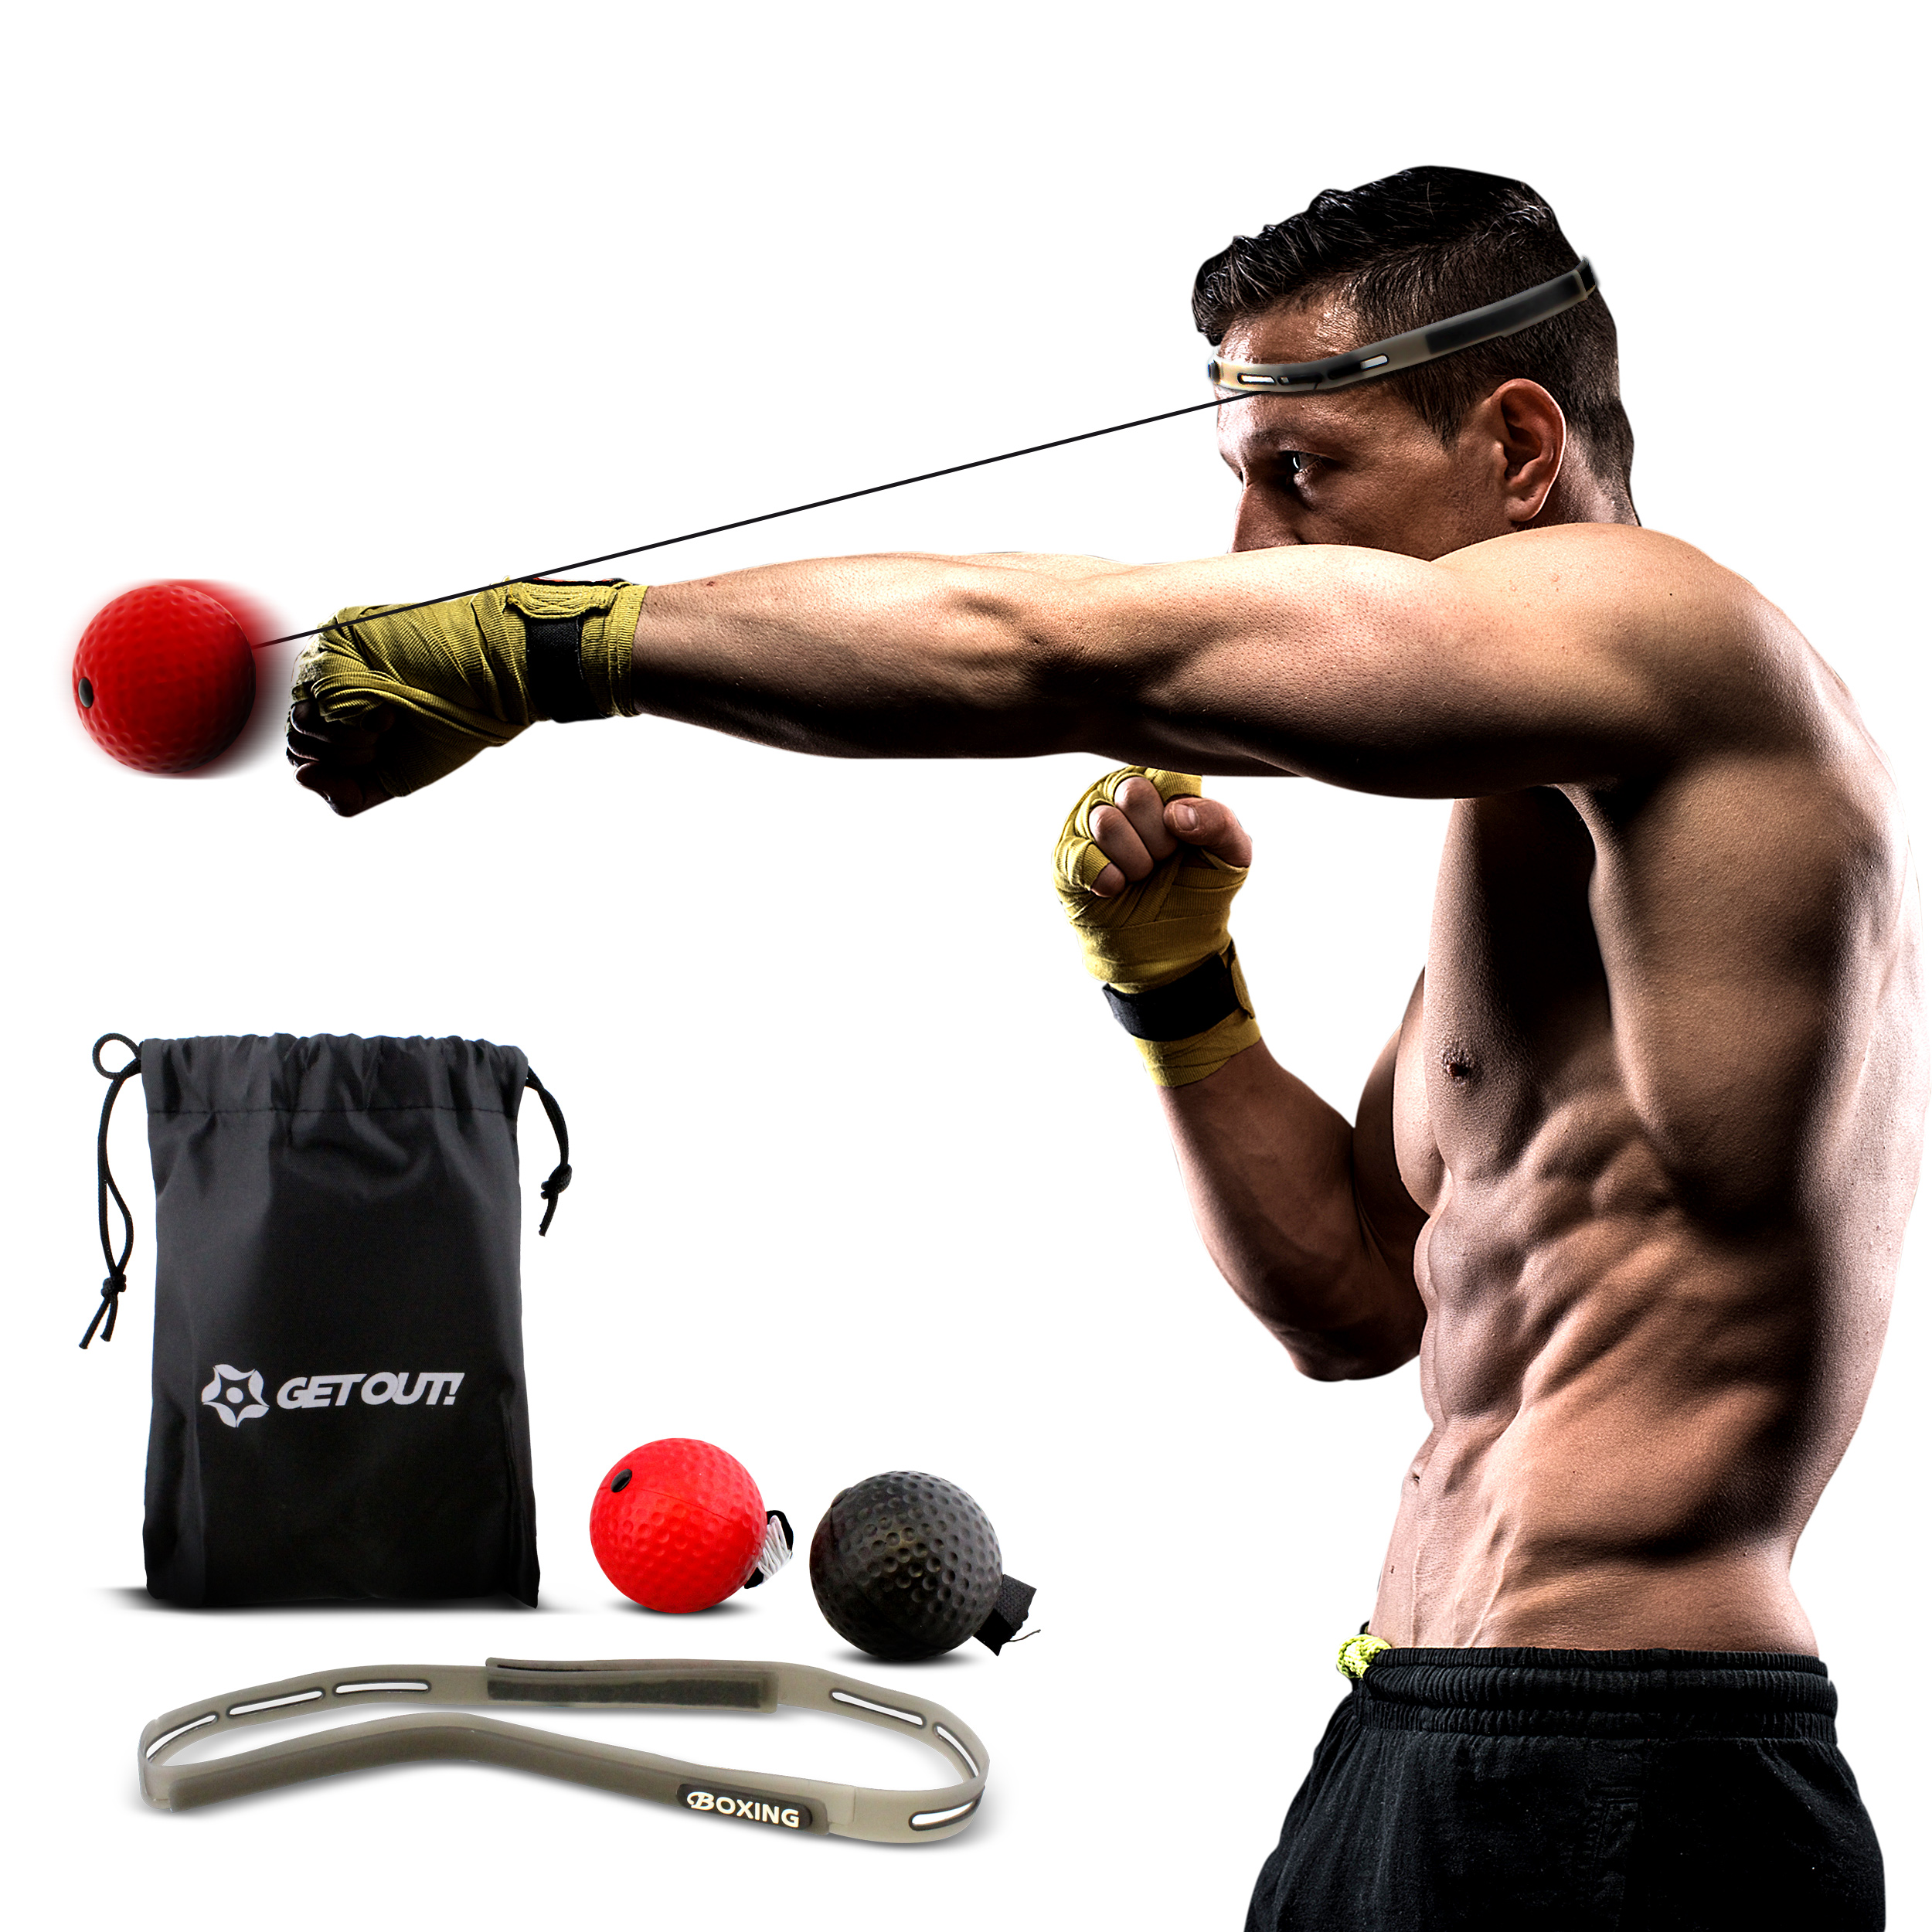 Get Out!™ Boxing Reflex Ball Set – Reaction Ball – Agility Training Boxing Ball